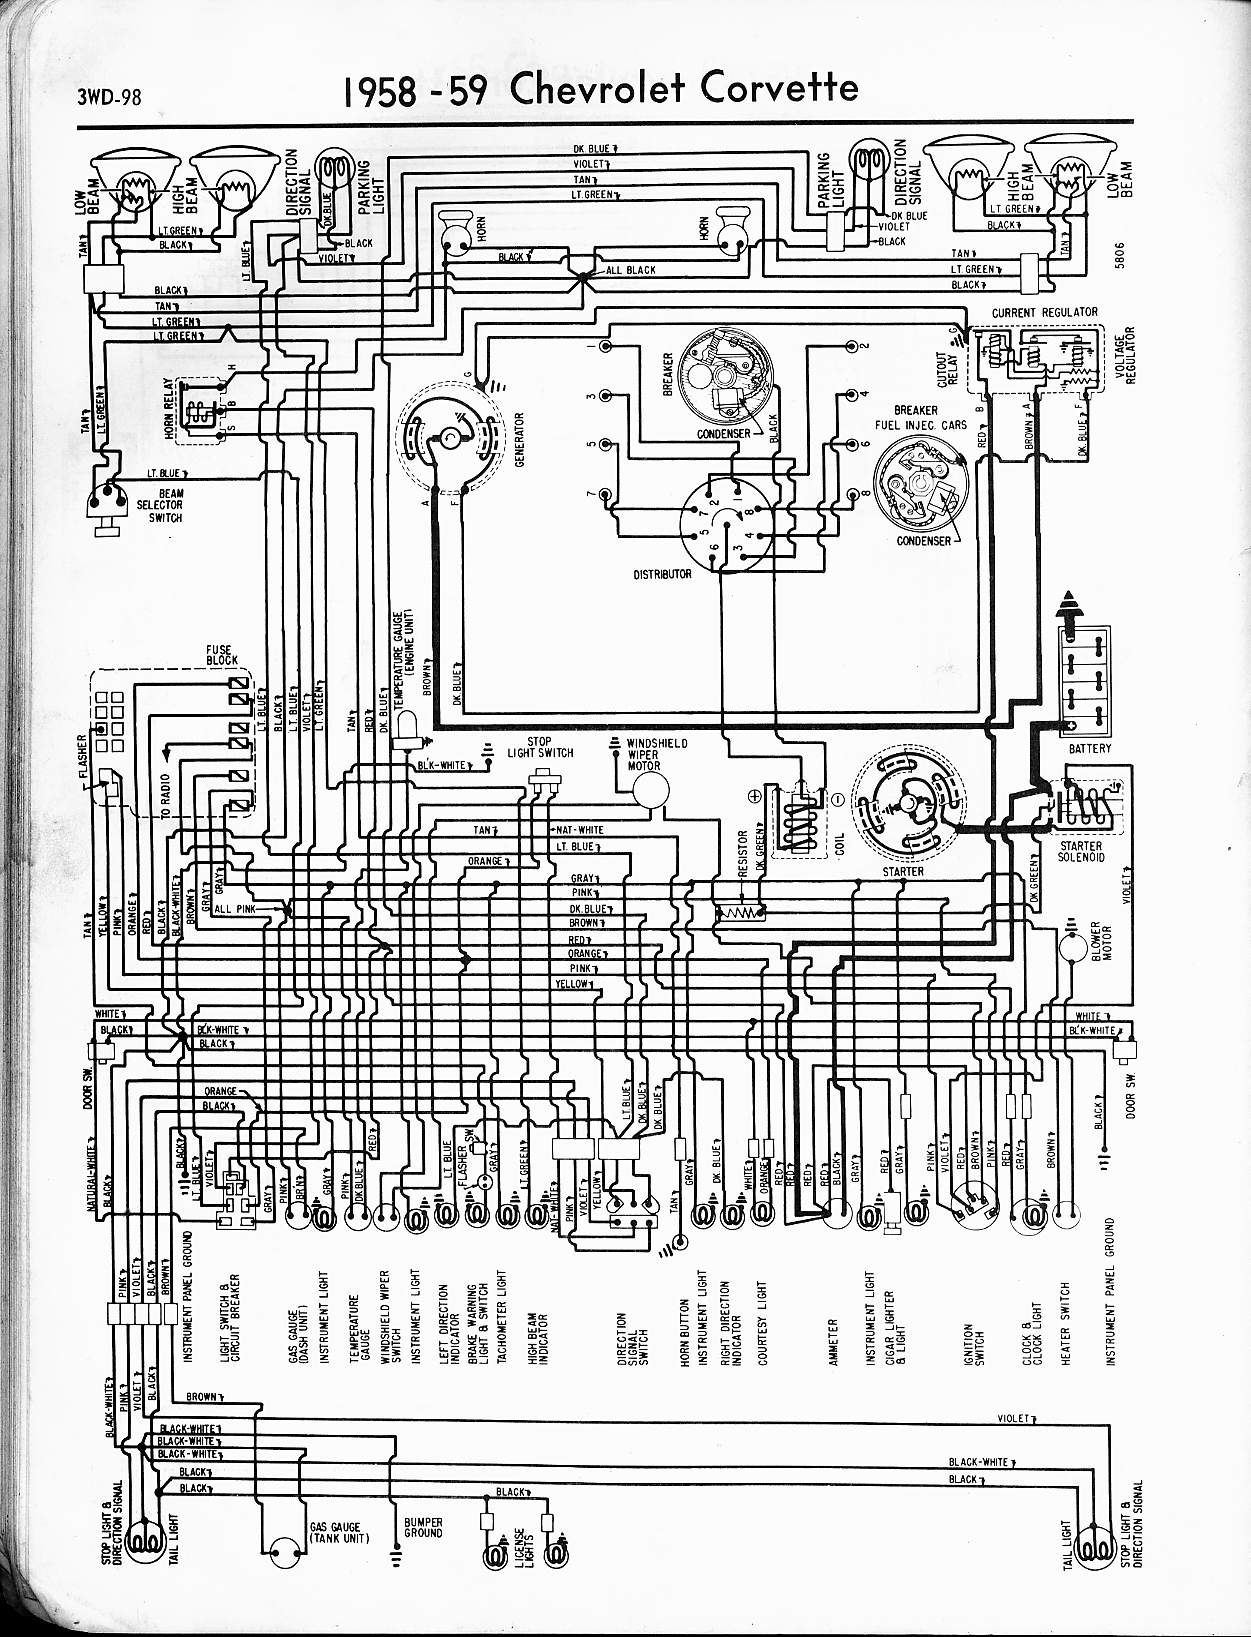 MWireChev58_3WD 098 100 [ car ignition wiring diagram ] affordable nice 1968 1957 chevrolet wiring diagram at readyjetset.co